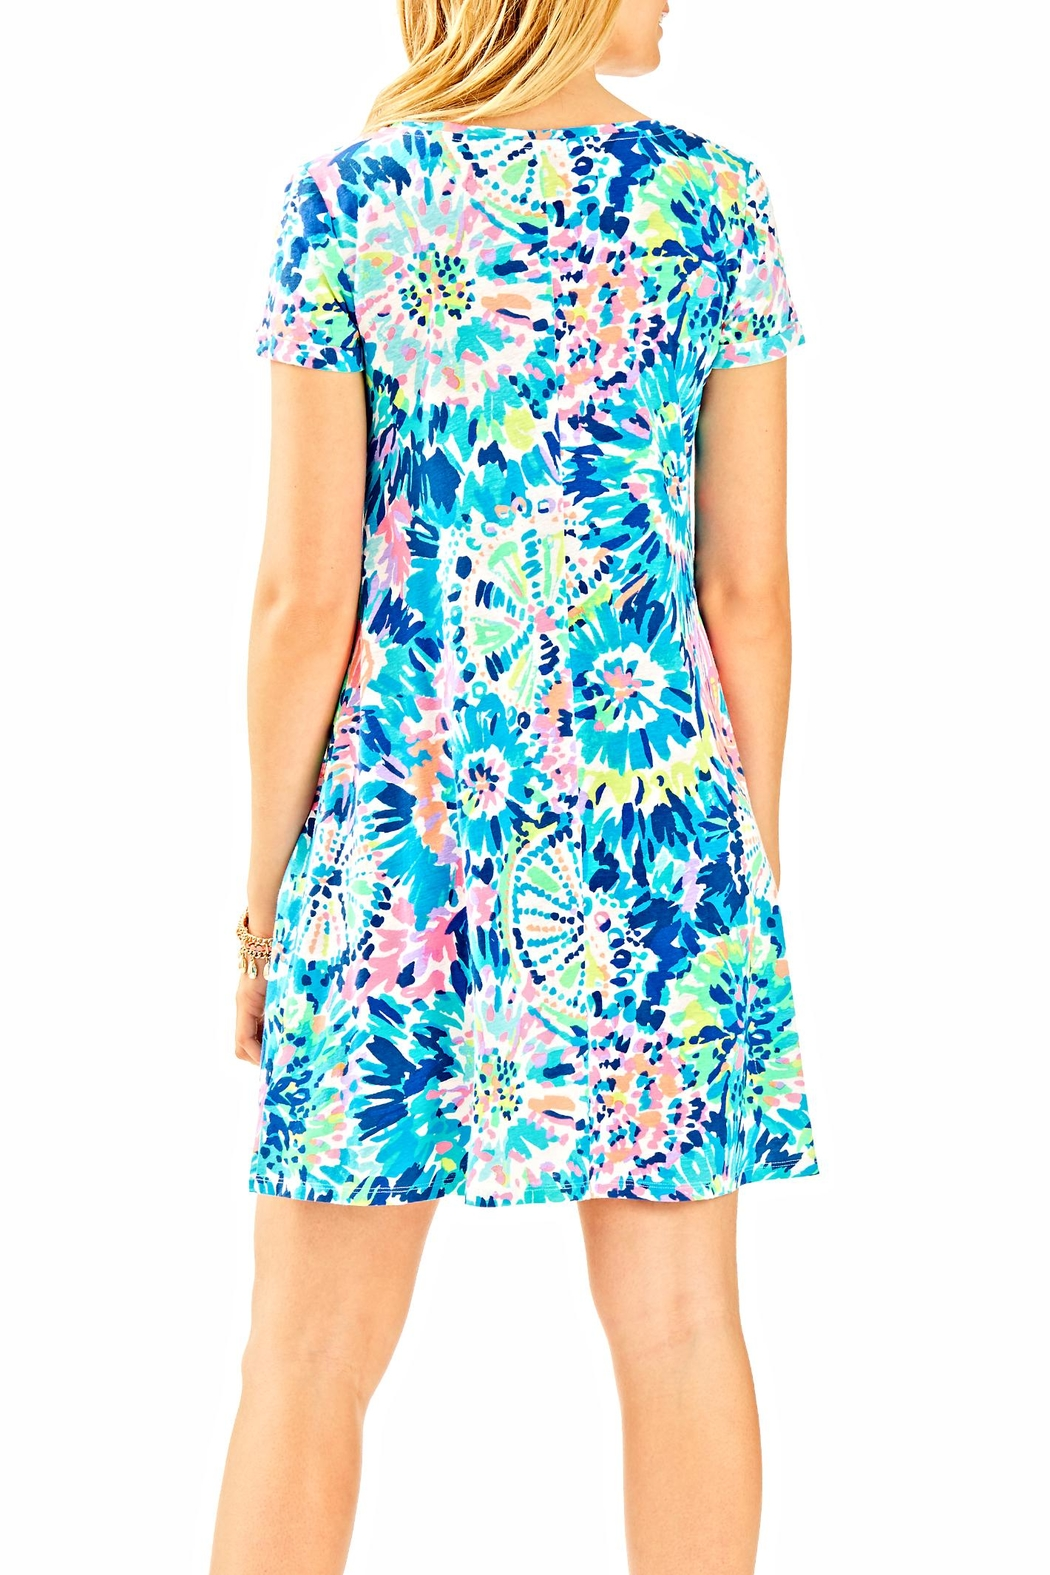 957a6c39df5e5a Lilly Pulitzer Jessica Short Sleeve Dress from Sandestin Golf and ...